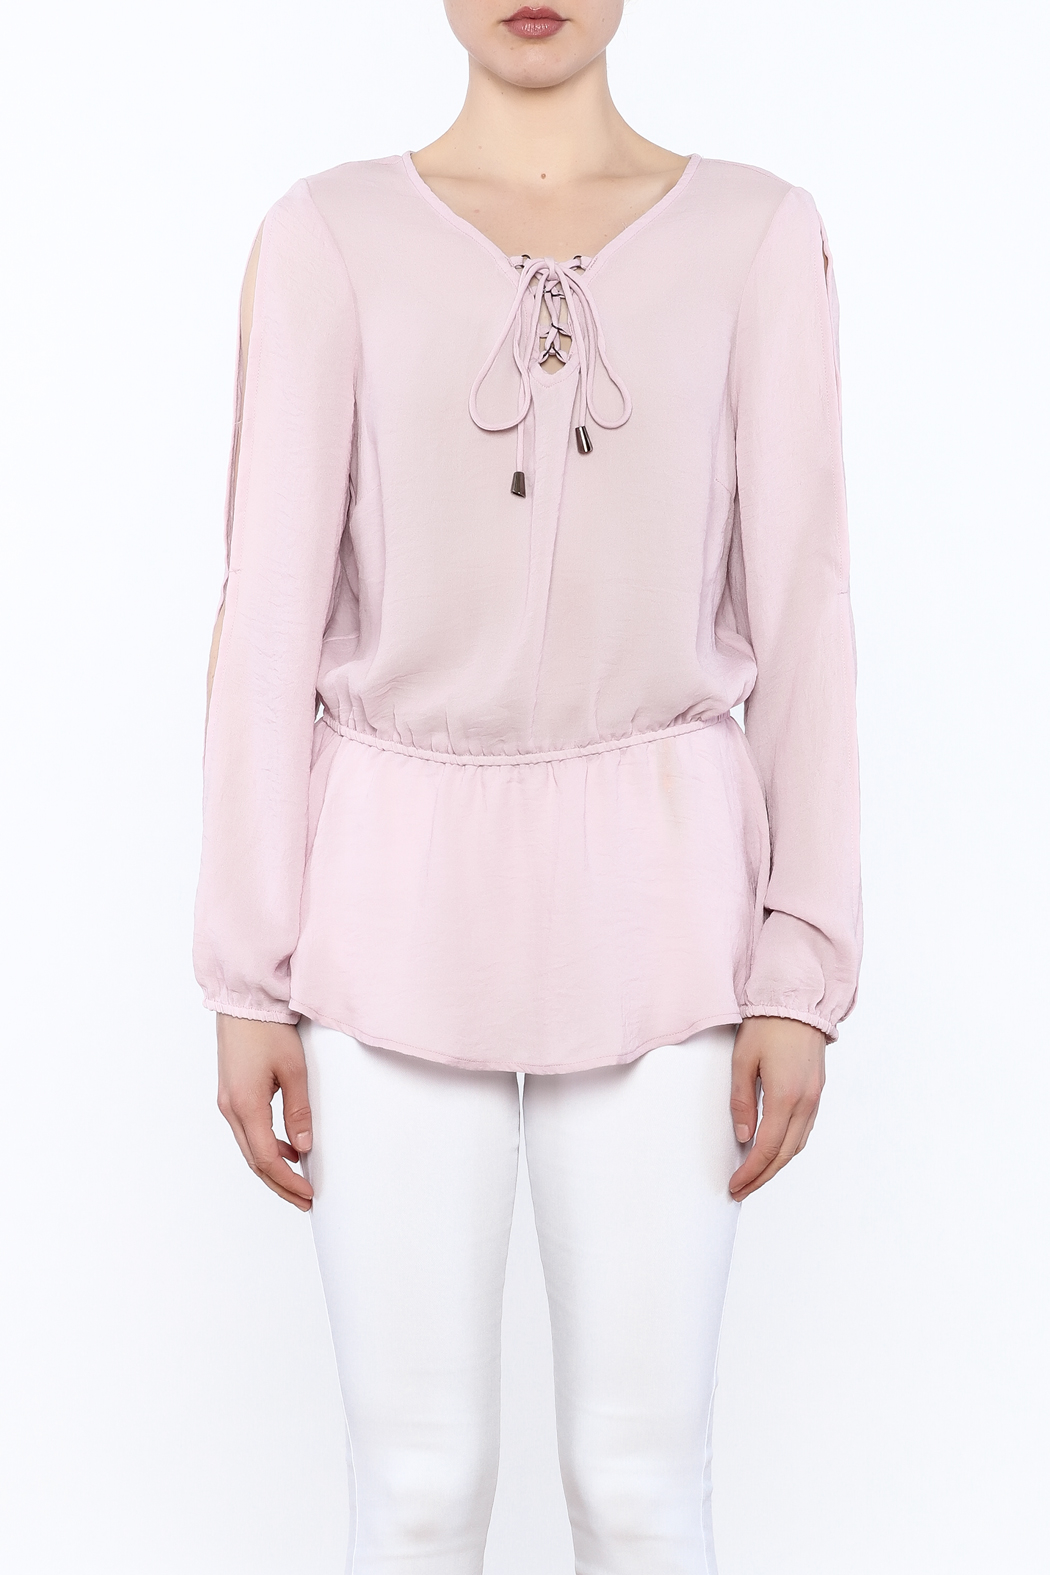 Entro Laced Up Blouse - Front Full Image